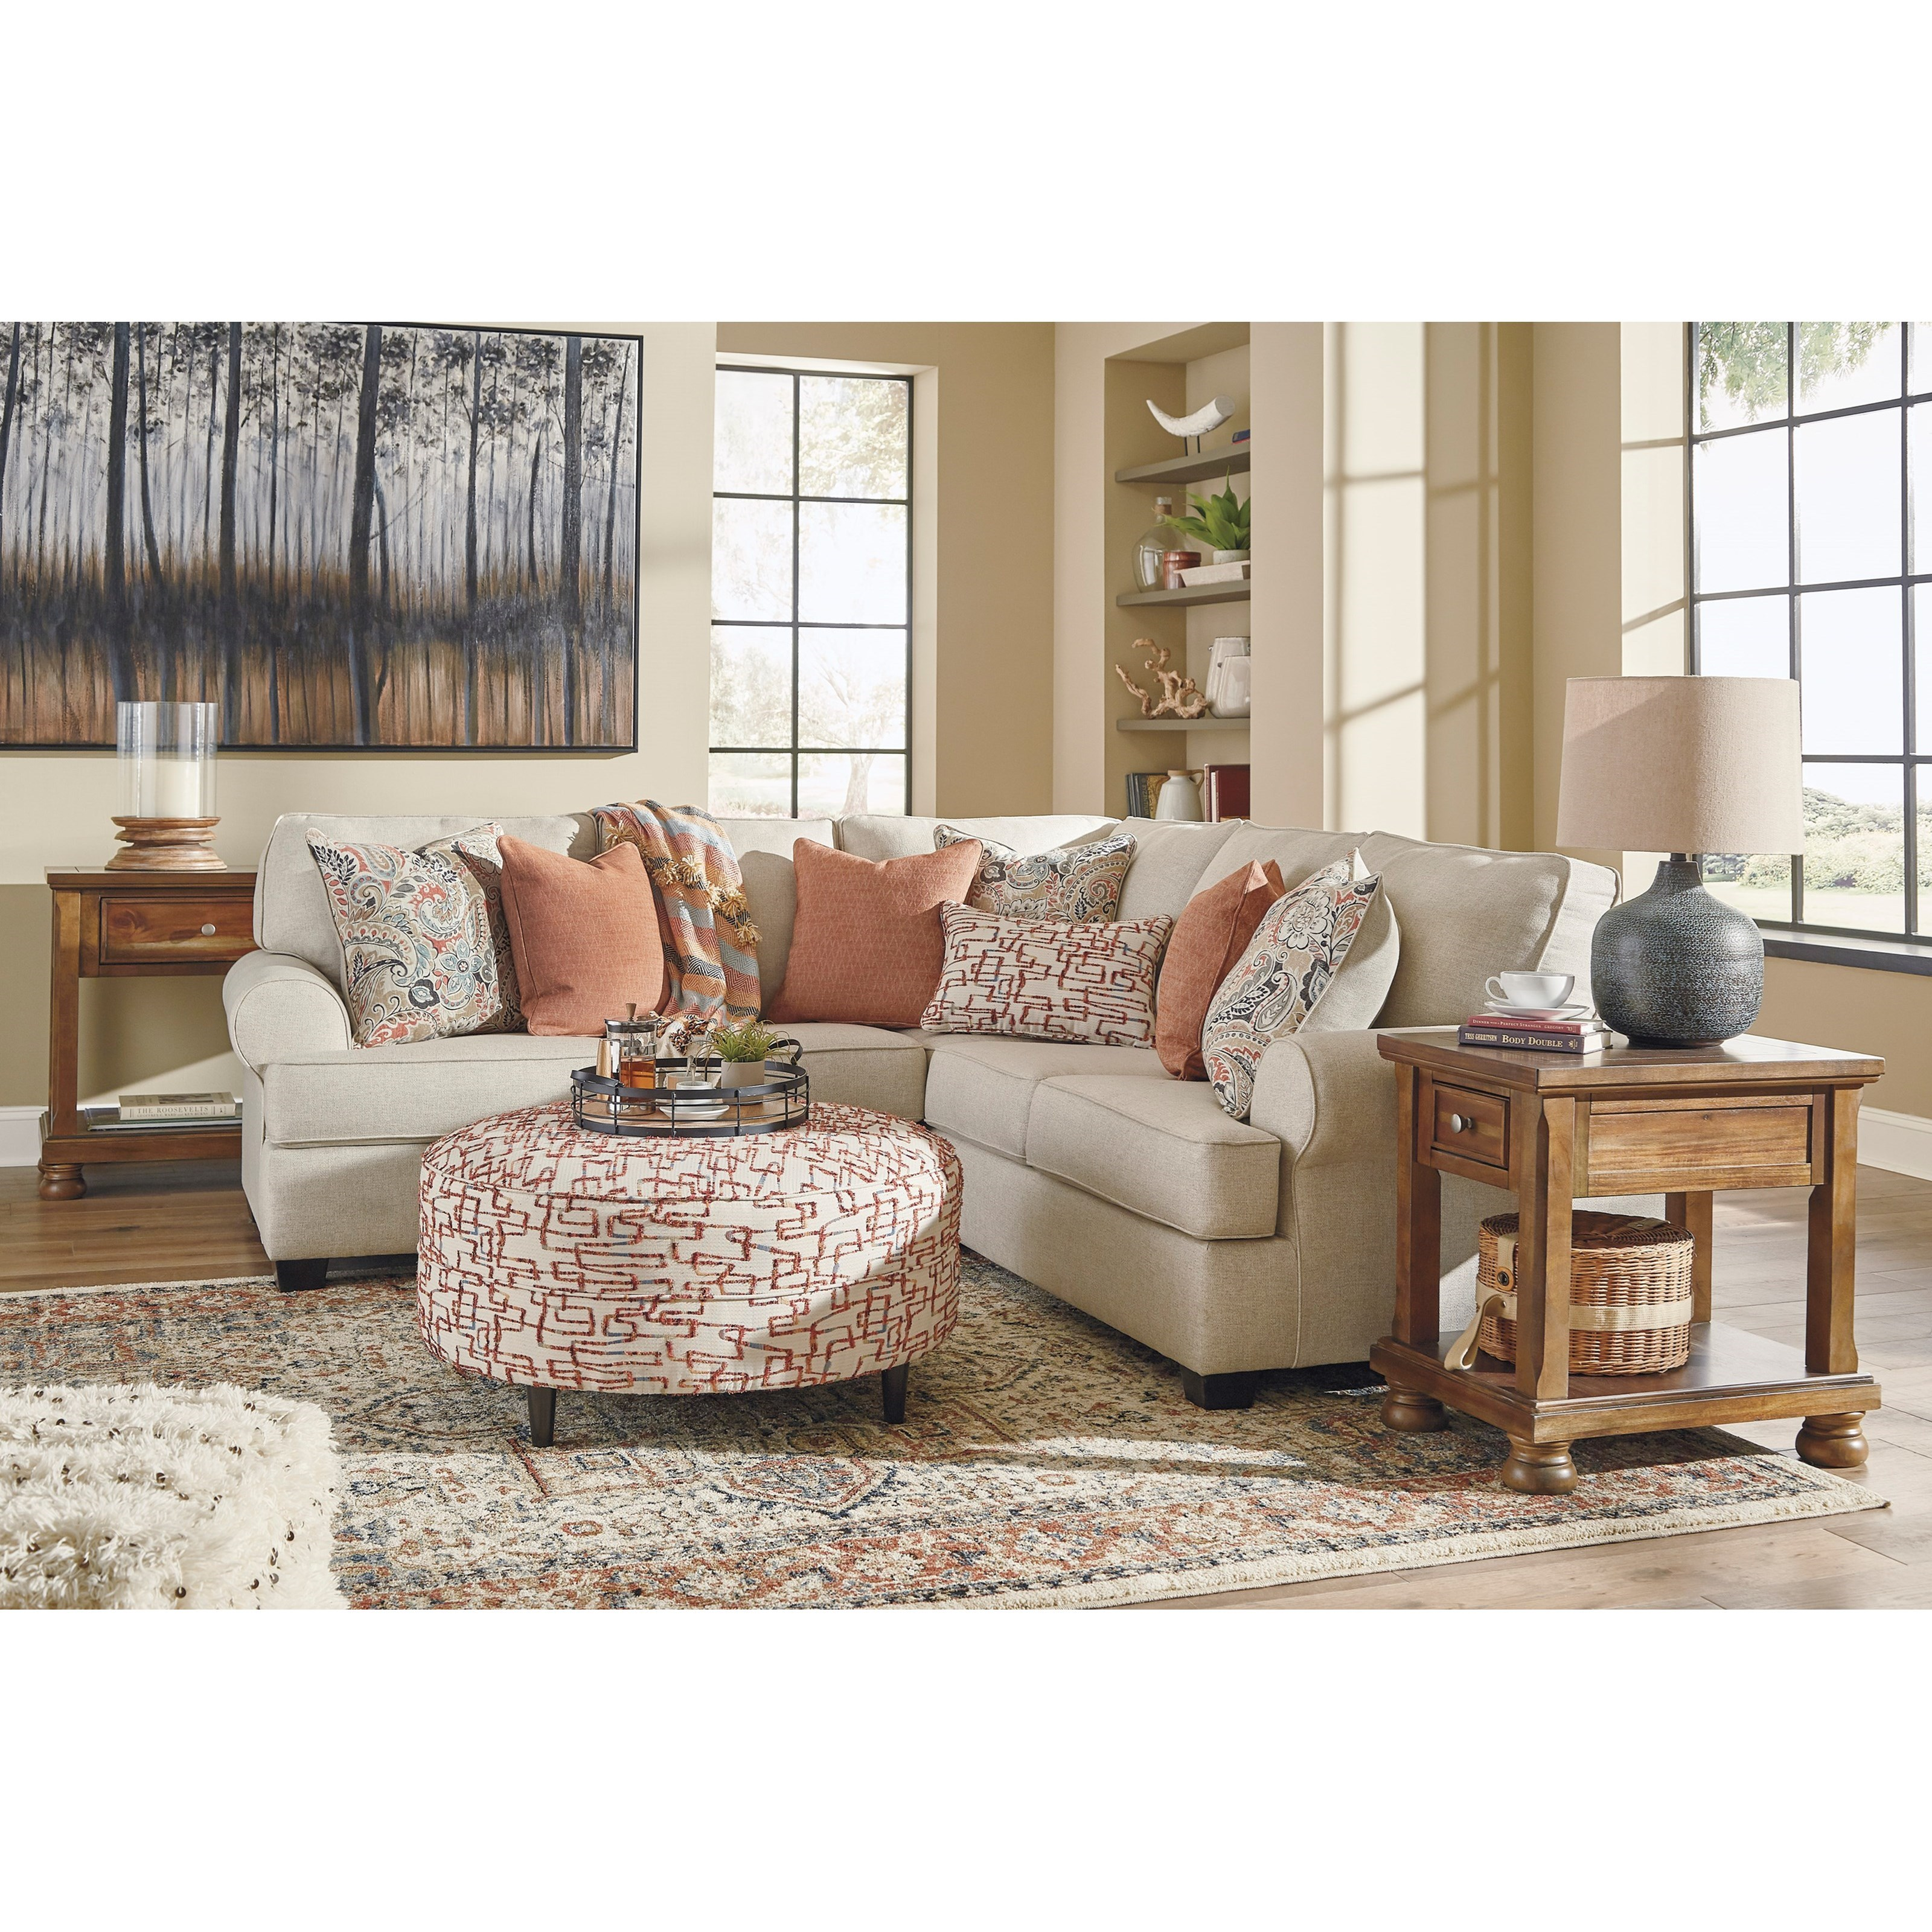 Amici Living Room Group by Signature Design by Ashley at Rife's Home Furniture